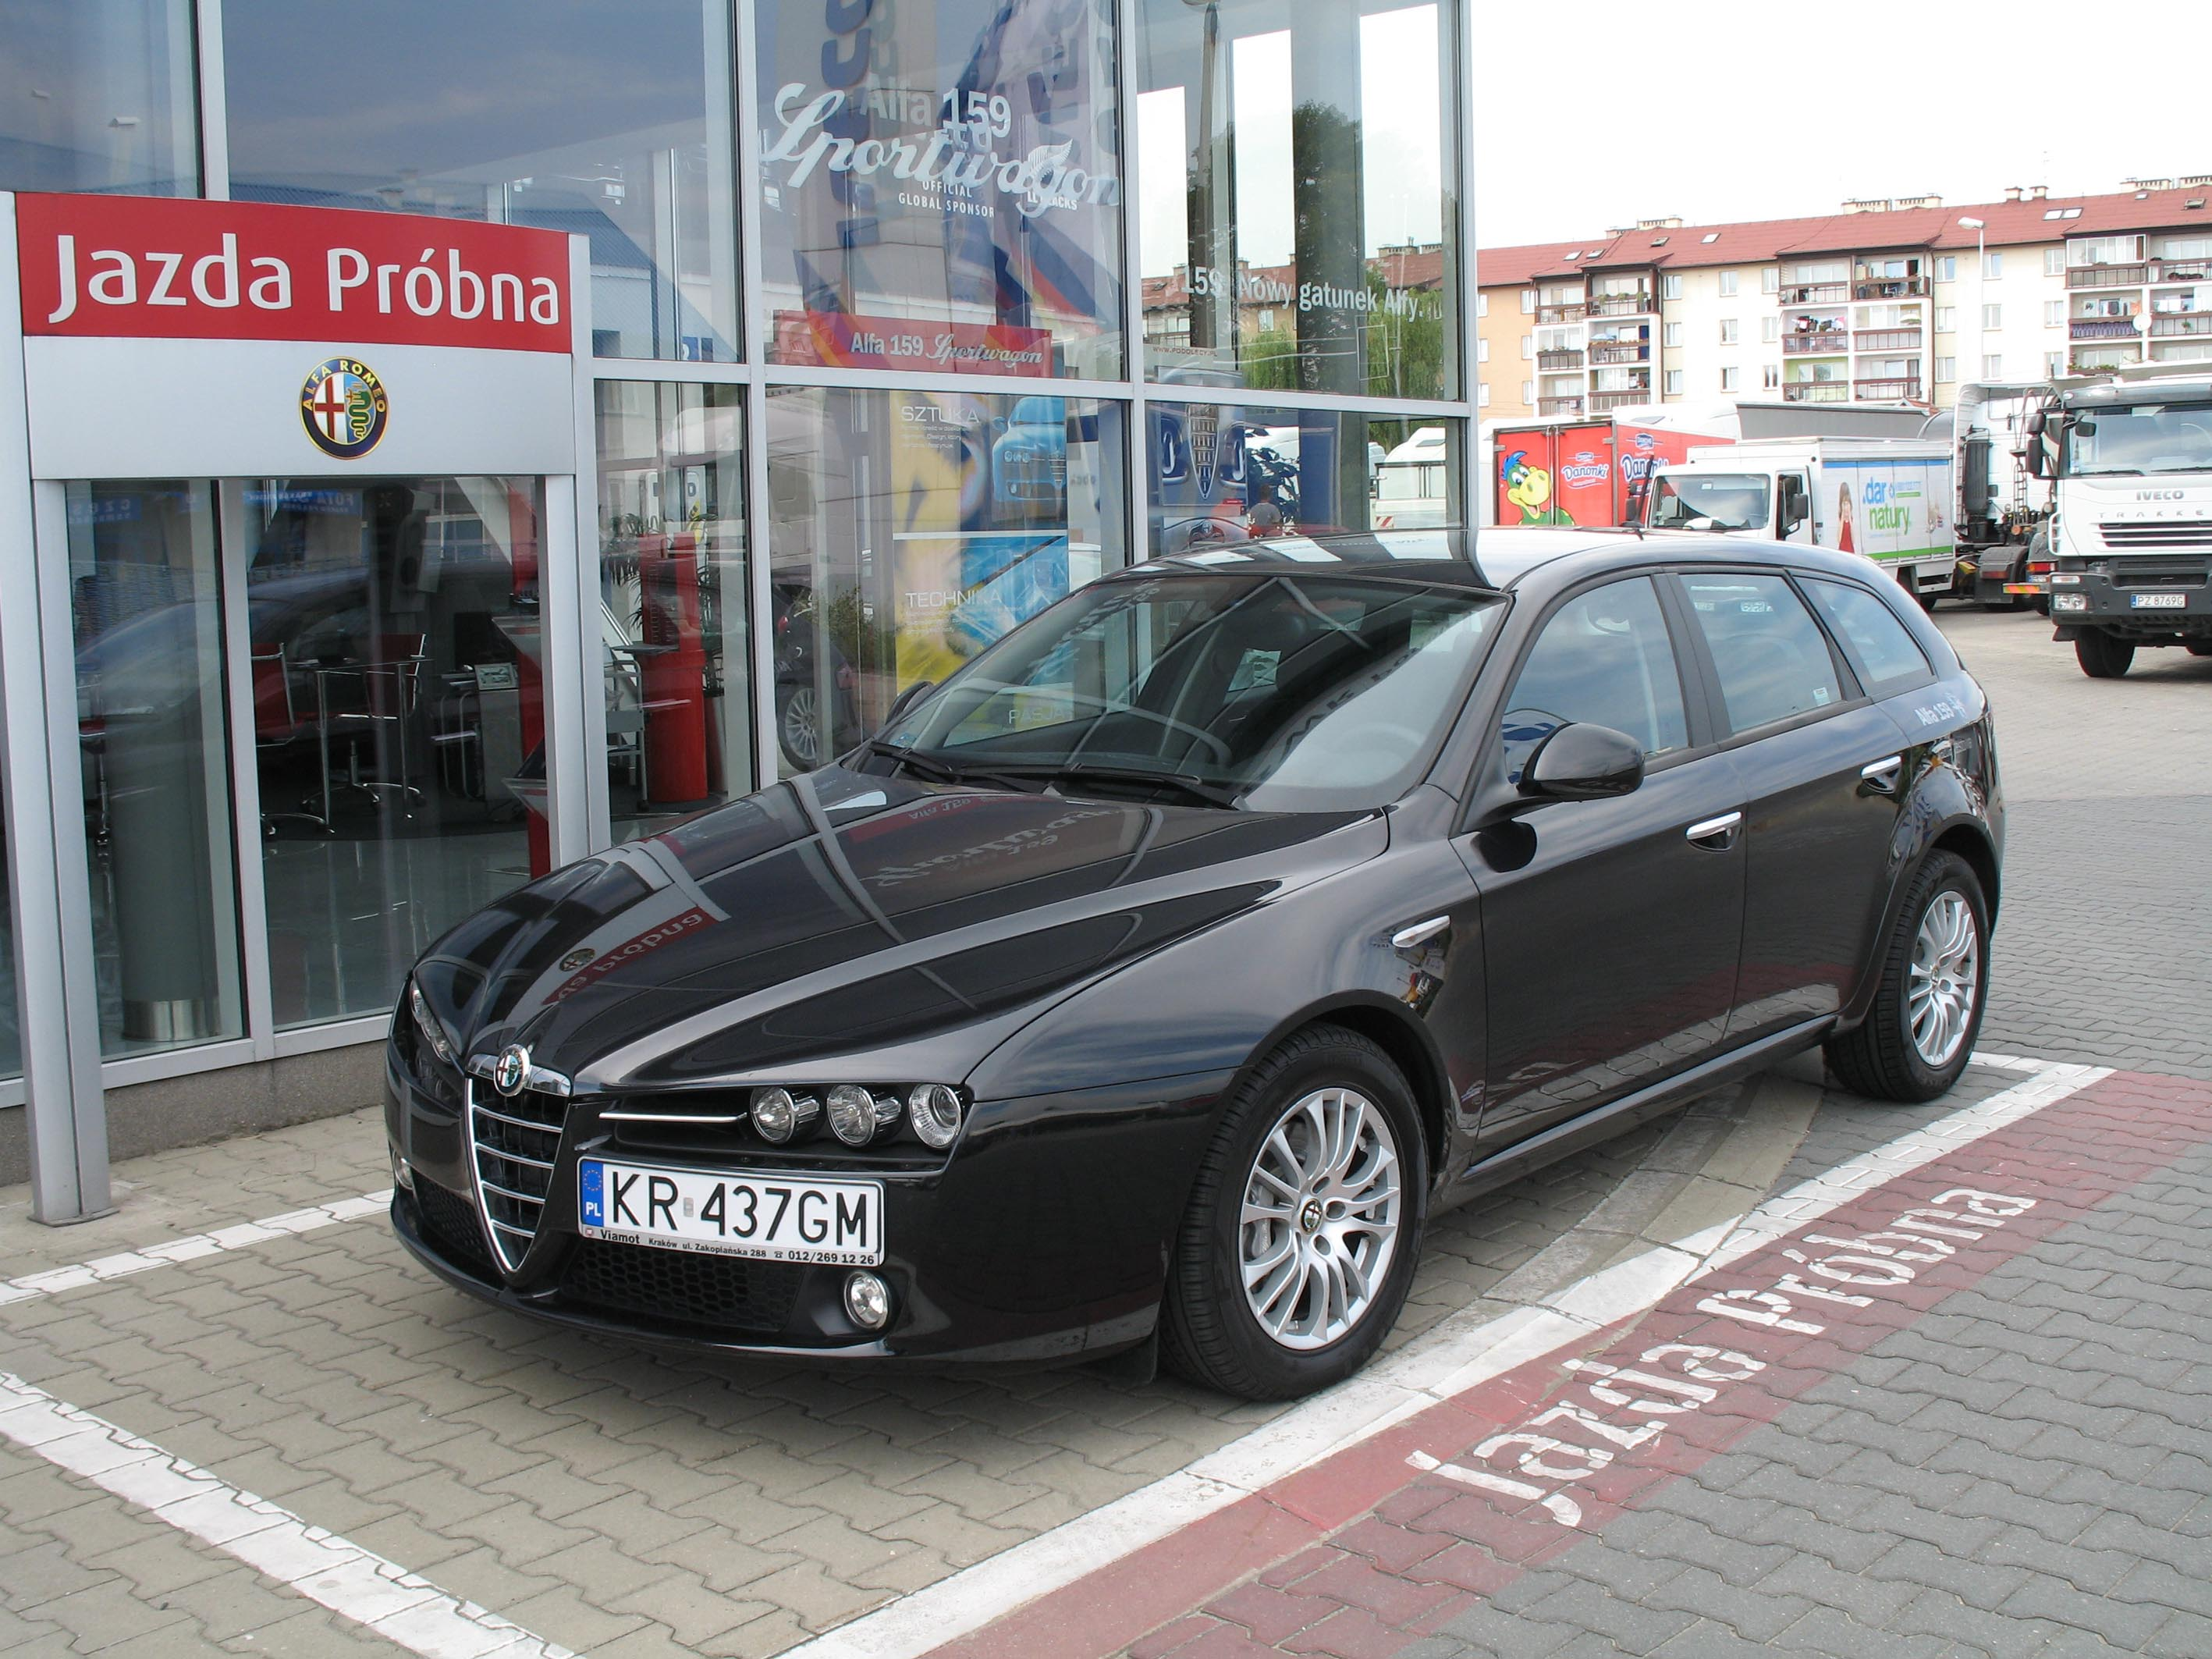 File Alfa Romeo 159 Sportwagon 1 9 Jtd Do Jazd Probnych Jpg Wikimedia Commons